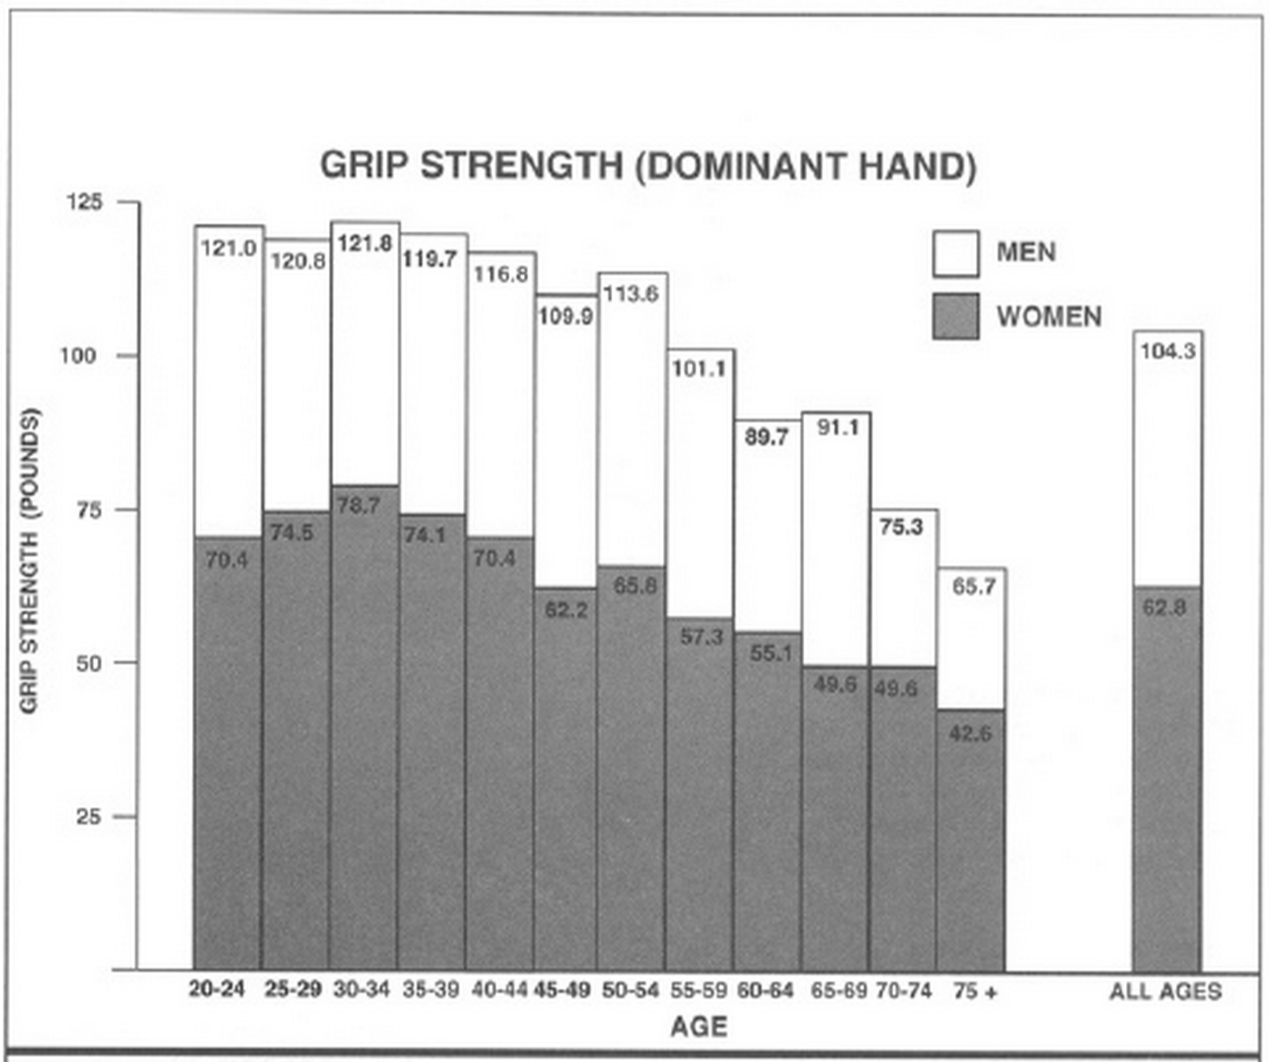 Dynamometer Norms For Adults : Grip strength norms for the dominant hand using